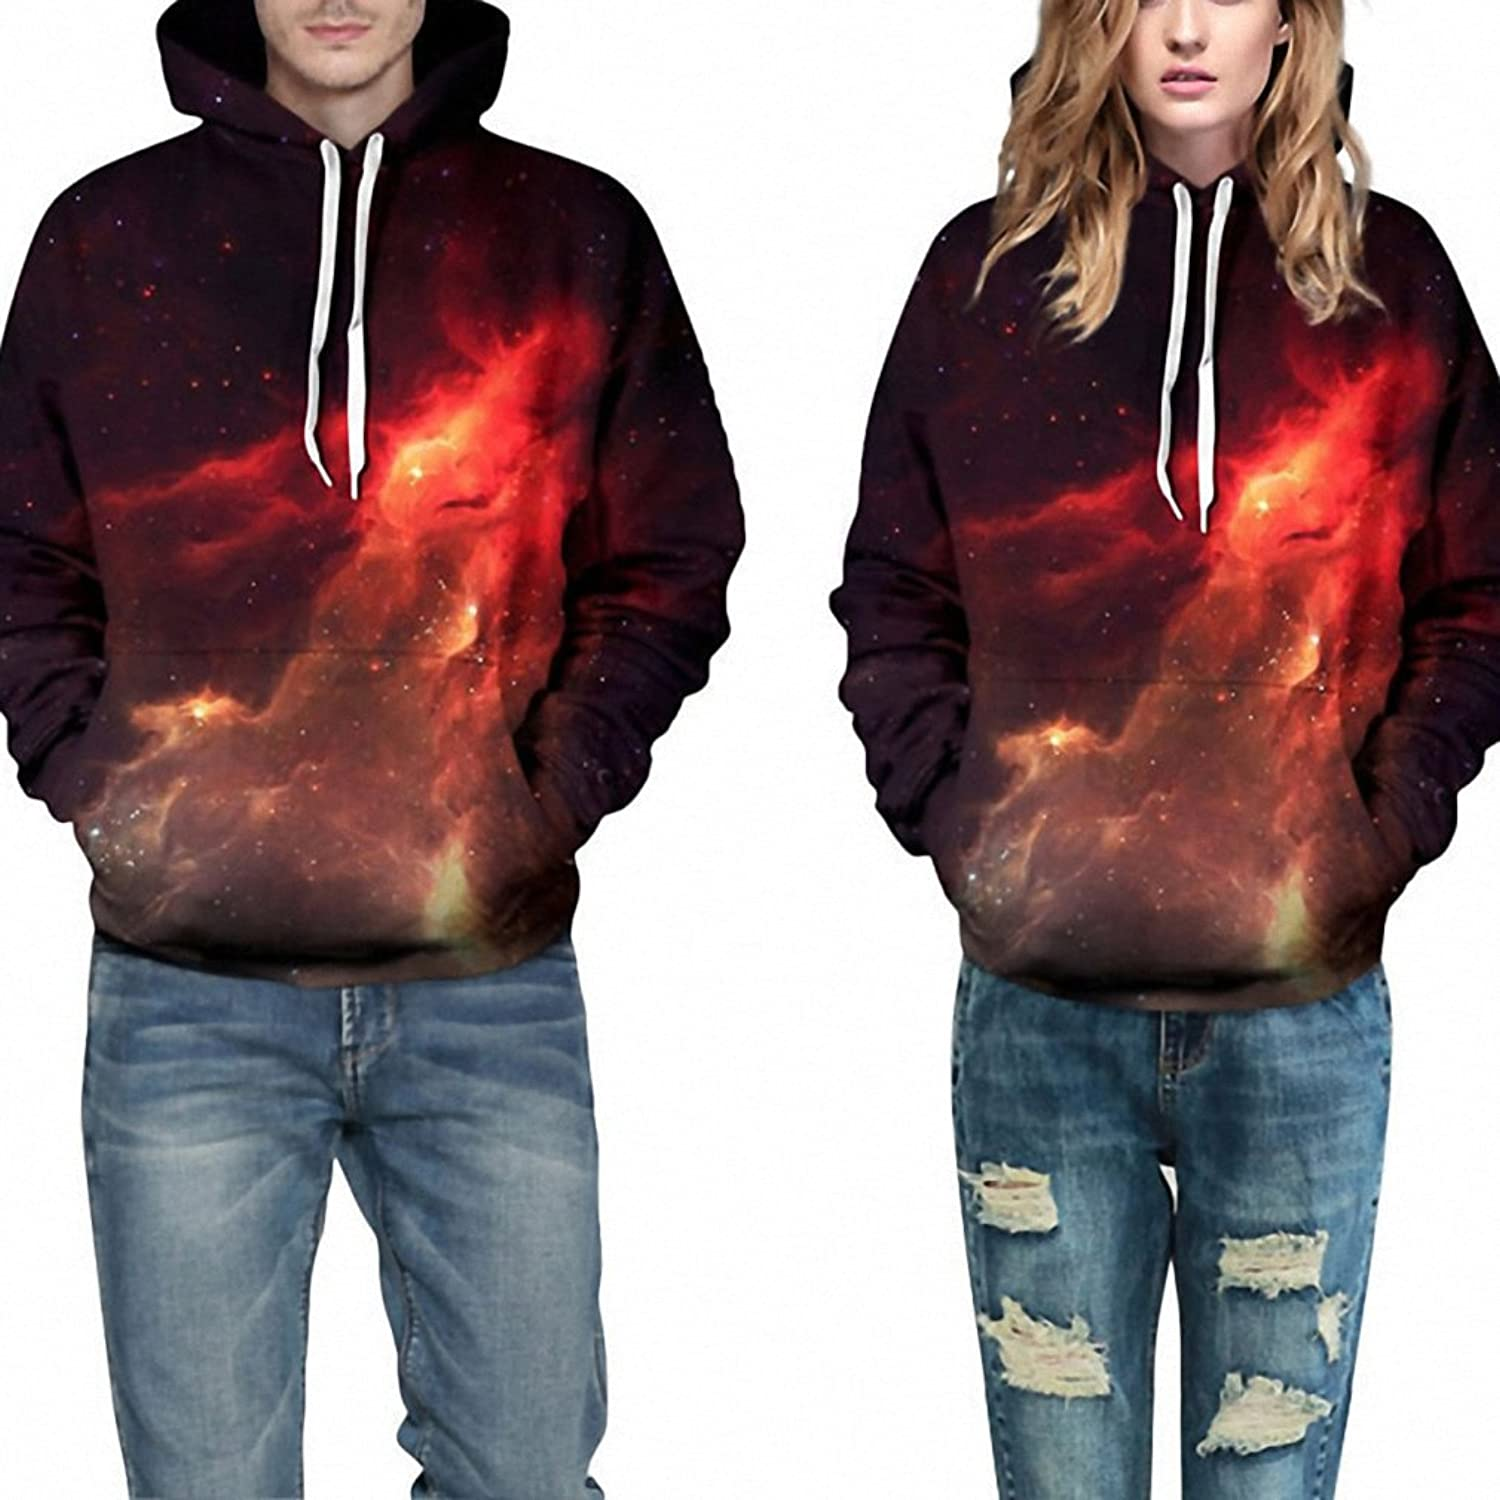 Crochi Series Space Galaxy Sweatshirt Hoodies 3D Print Hip Hop Coats Casual Sweat Shirt Men Women Hooded Tops Plus Size at Amazon Mens Clothing store: